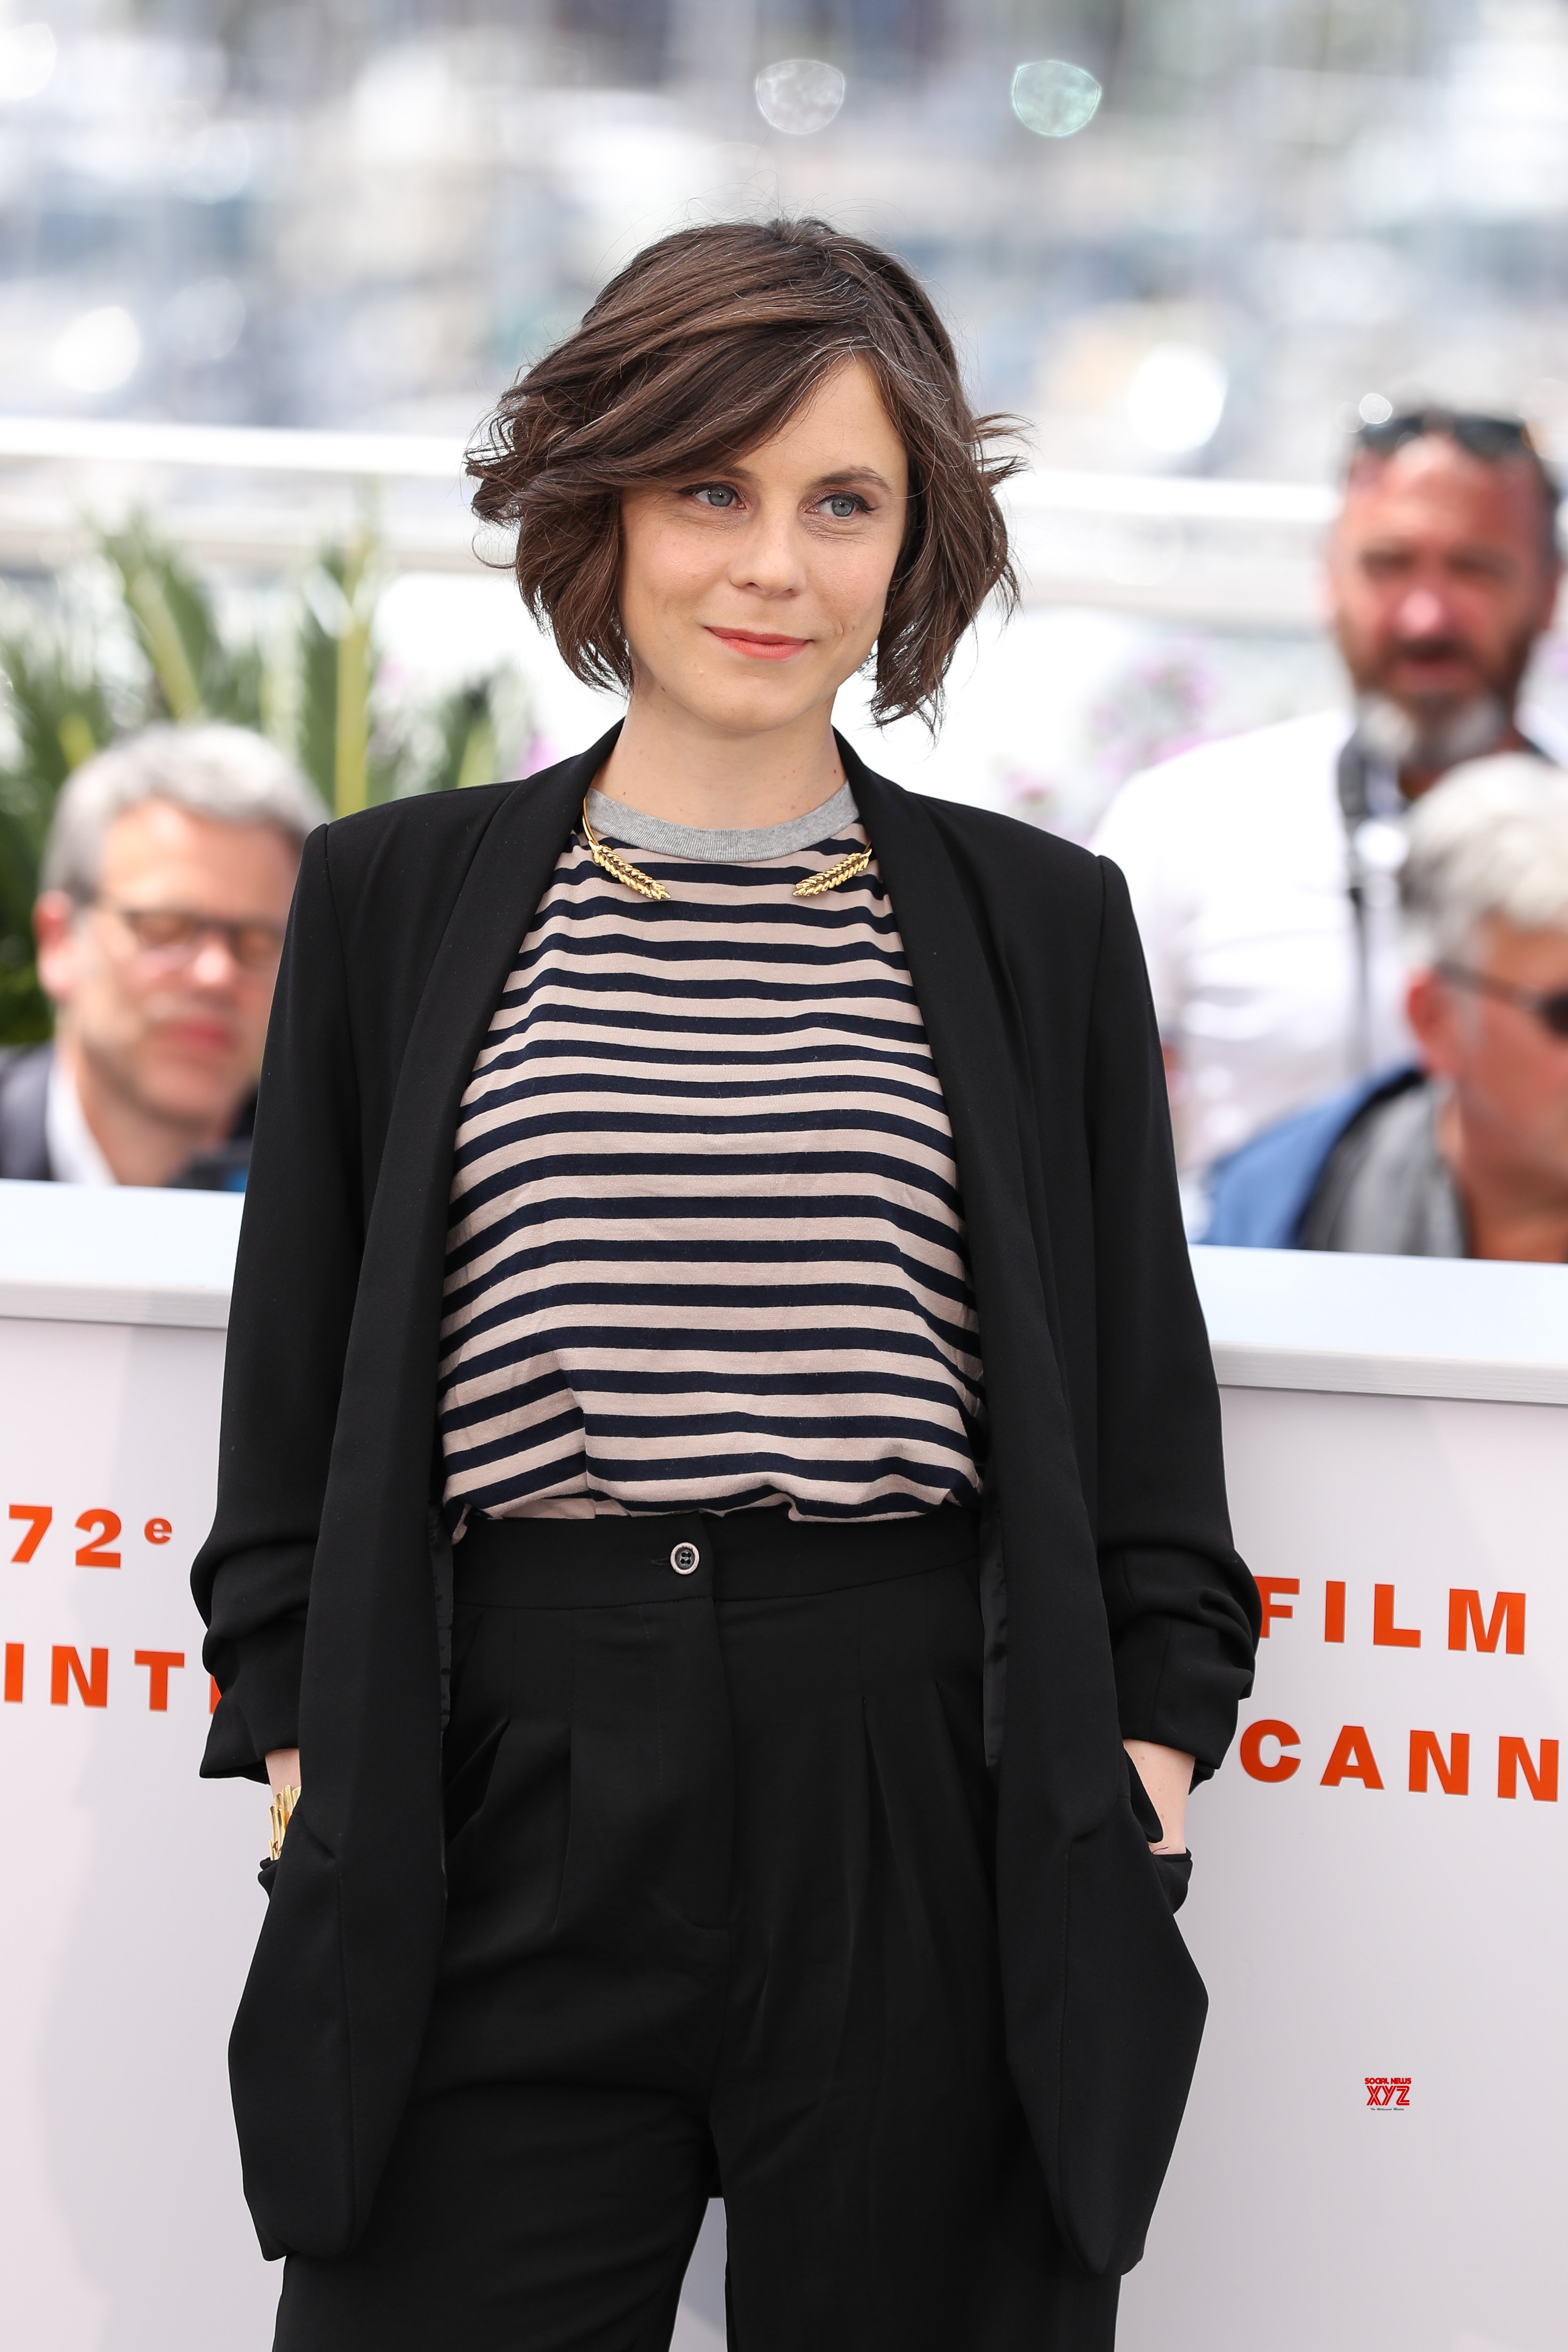 FRANCE - CANNES - FILM FESTIVAL - PHOTOCALL - 5B #Gallery